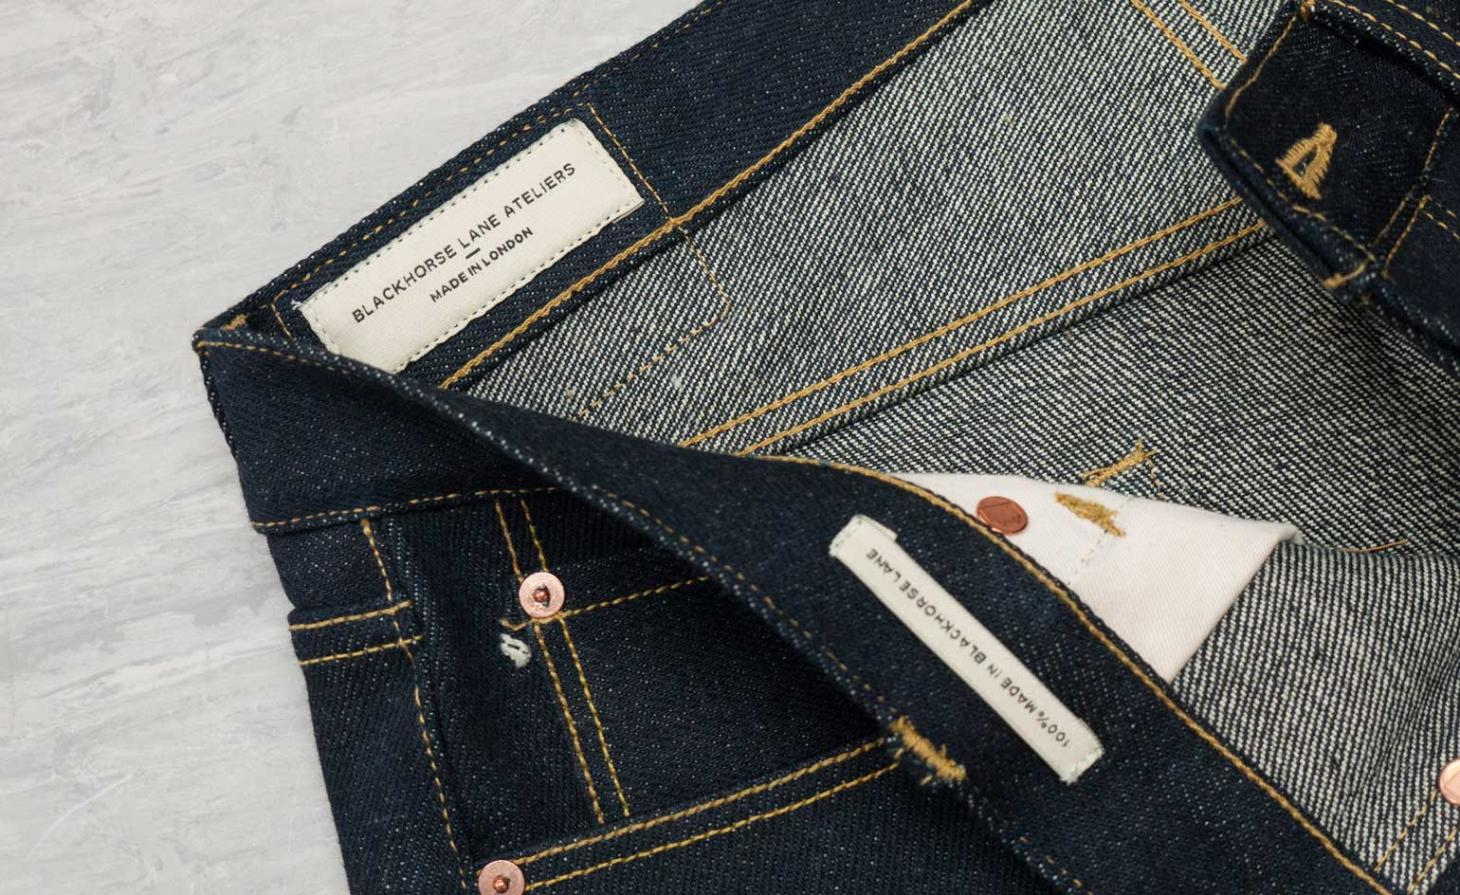 Blackhorse Lane denim close up